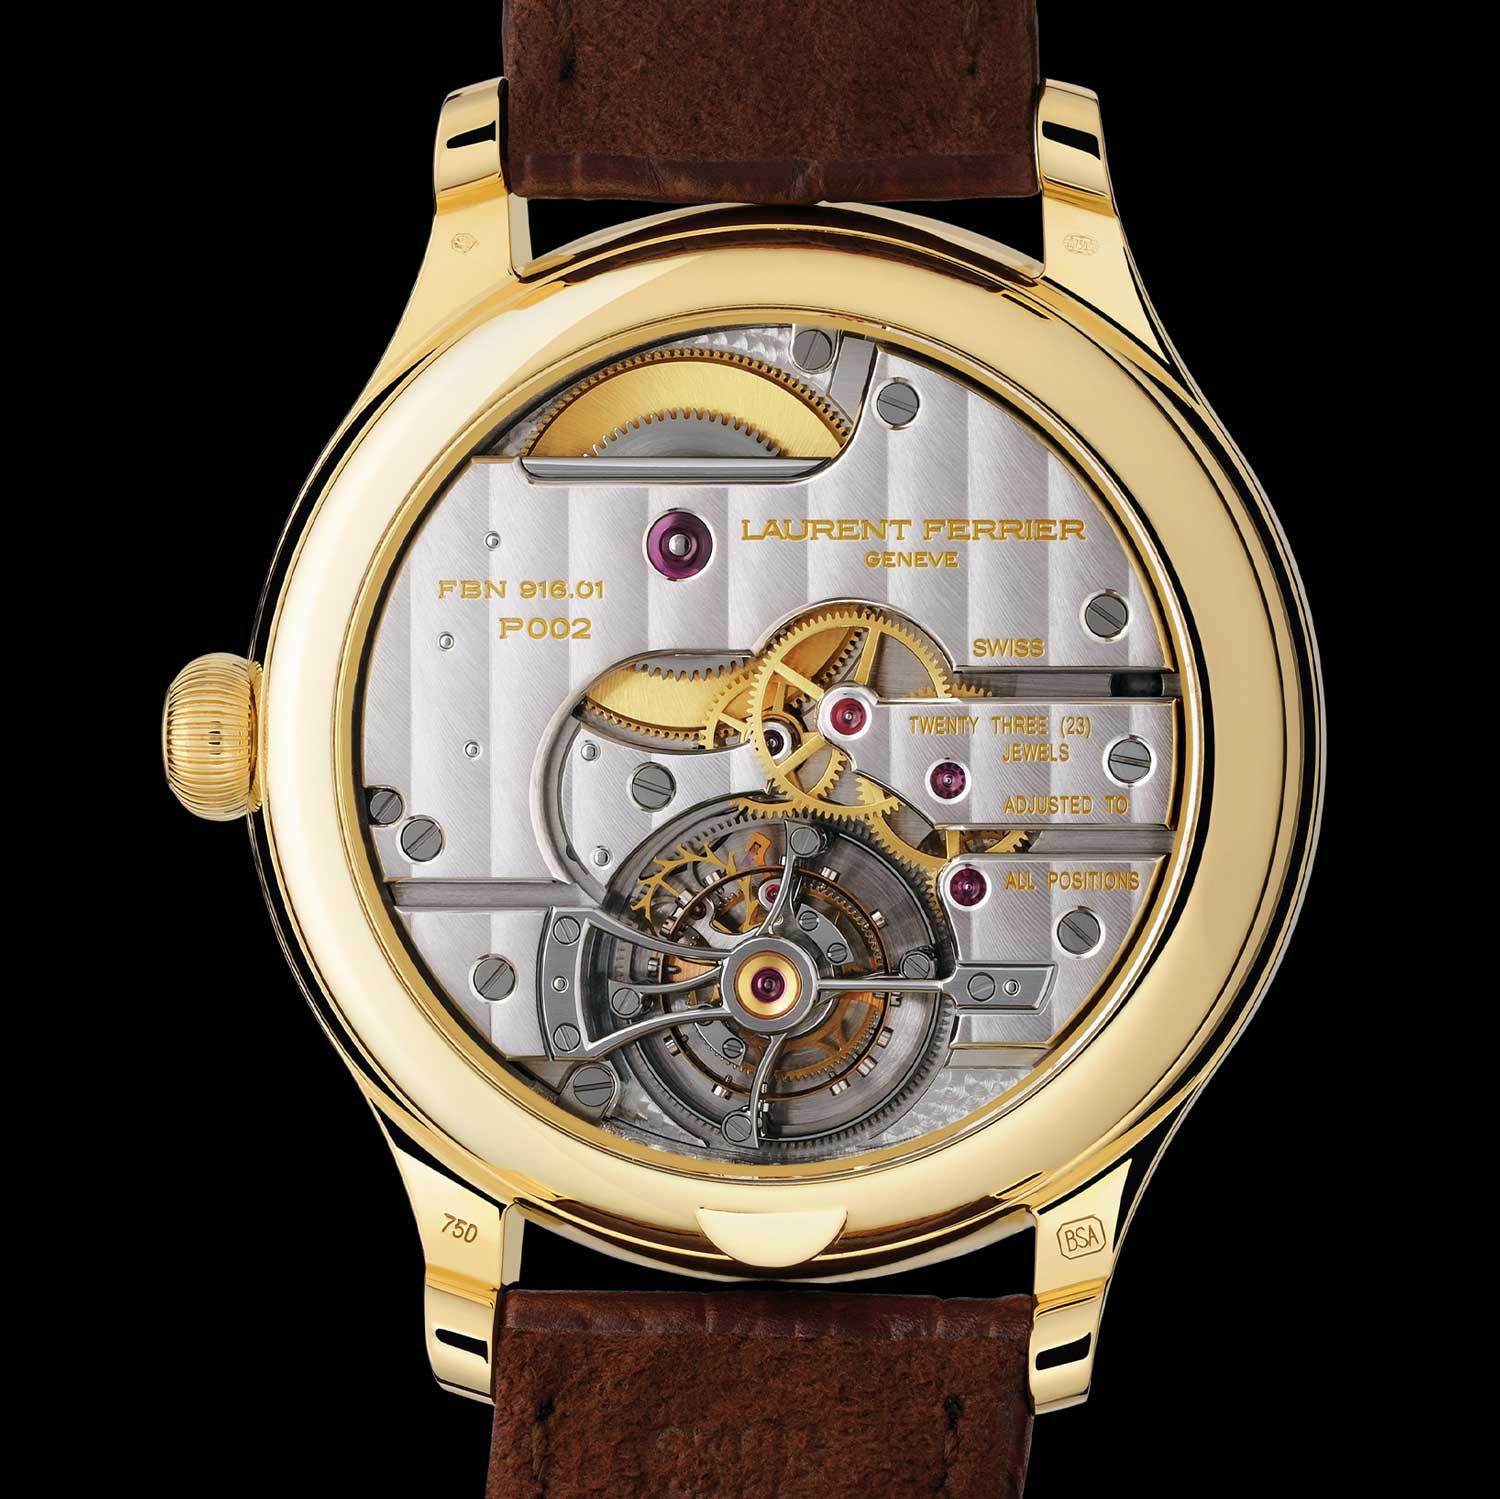 The Galet Classic Tourbillon Double Spiral was chronometer-certified by the Besançon Observatory. The calibre used within had an original device used in the tourbillon escapement, with double inverted hairsprings that kept the balance centred on its axis. This system guaranteed extreme reliability of the regulating system.